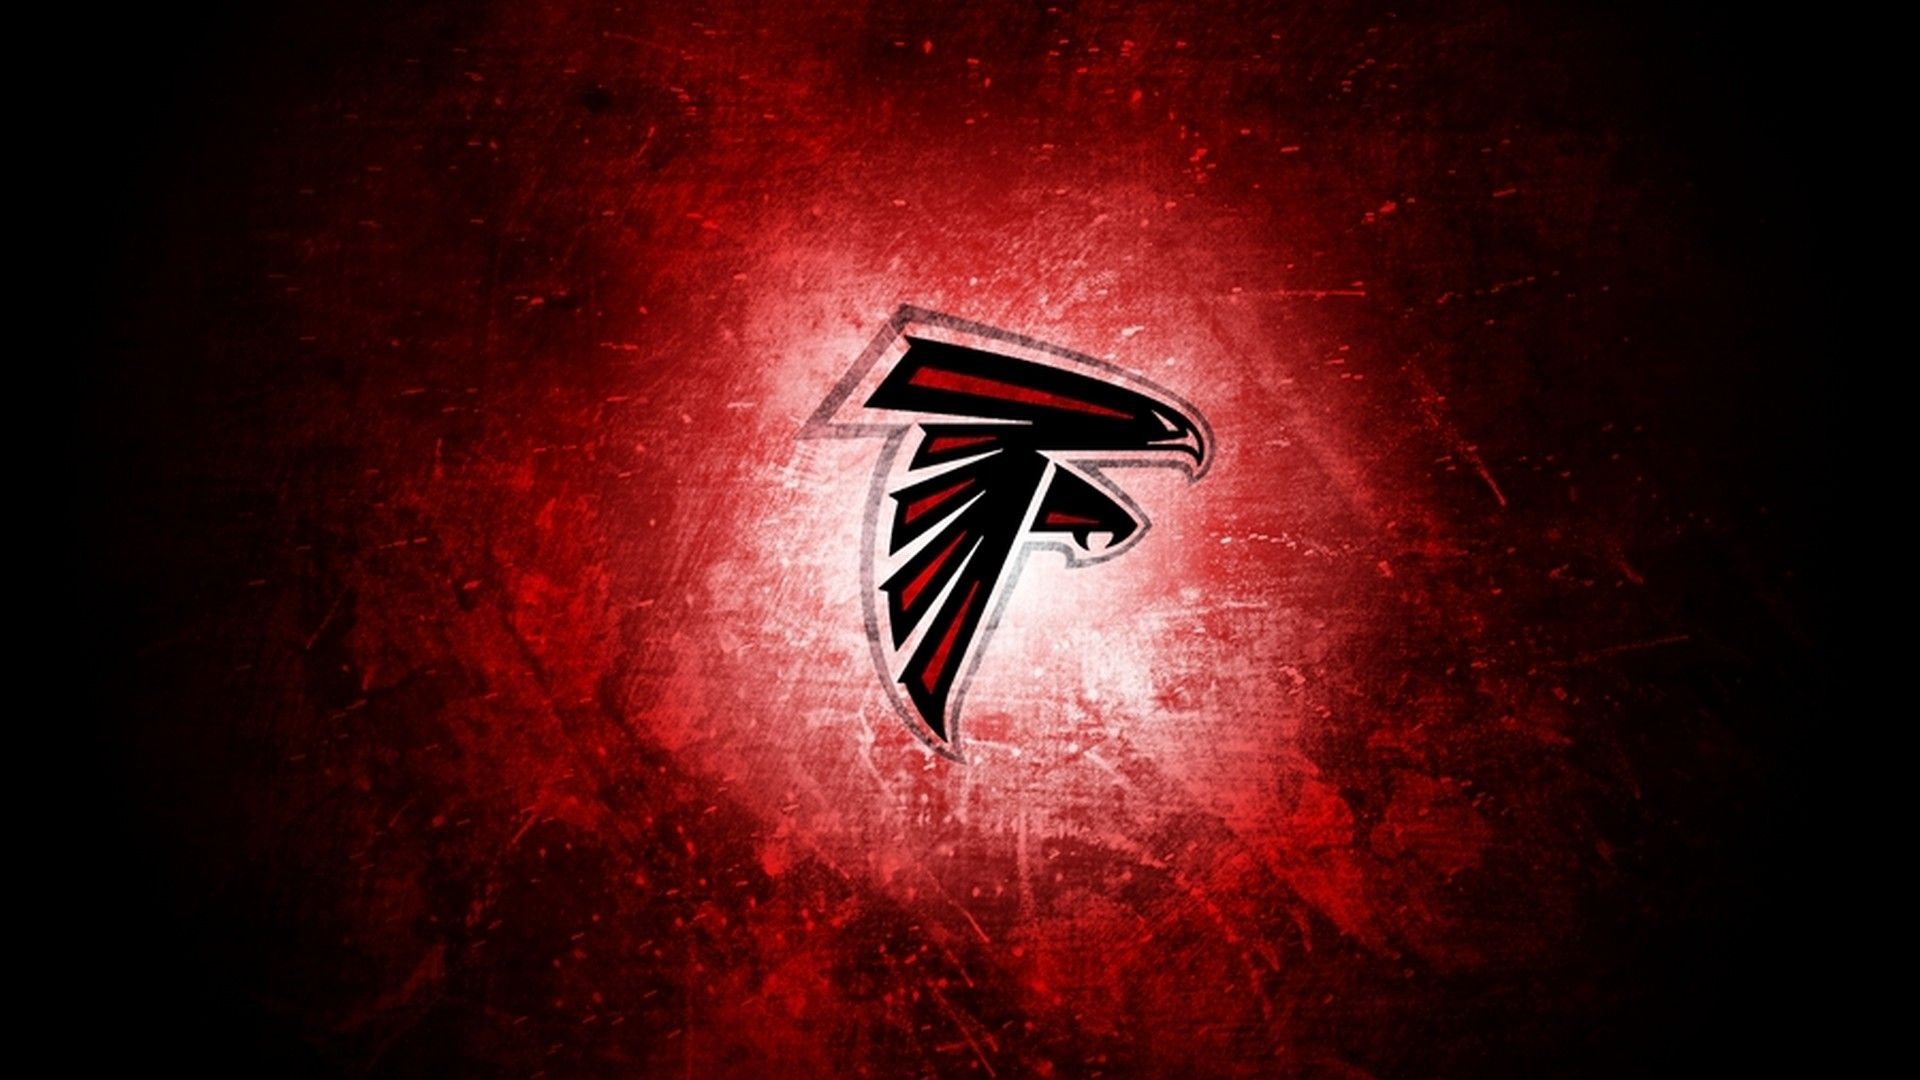 Wallpapers HD Atlanta Falcons Football paintings